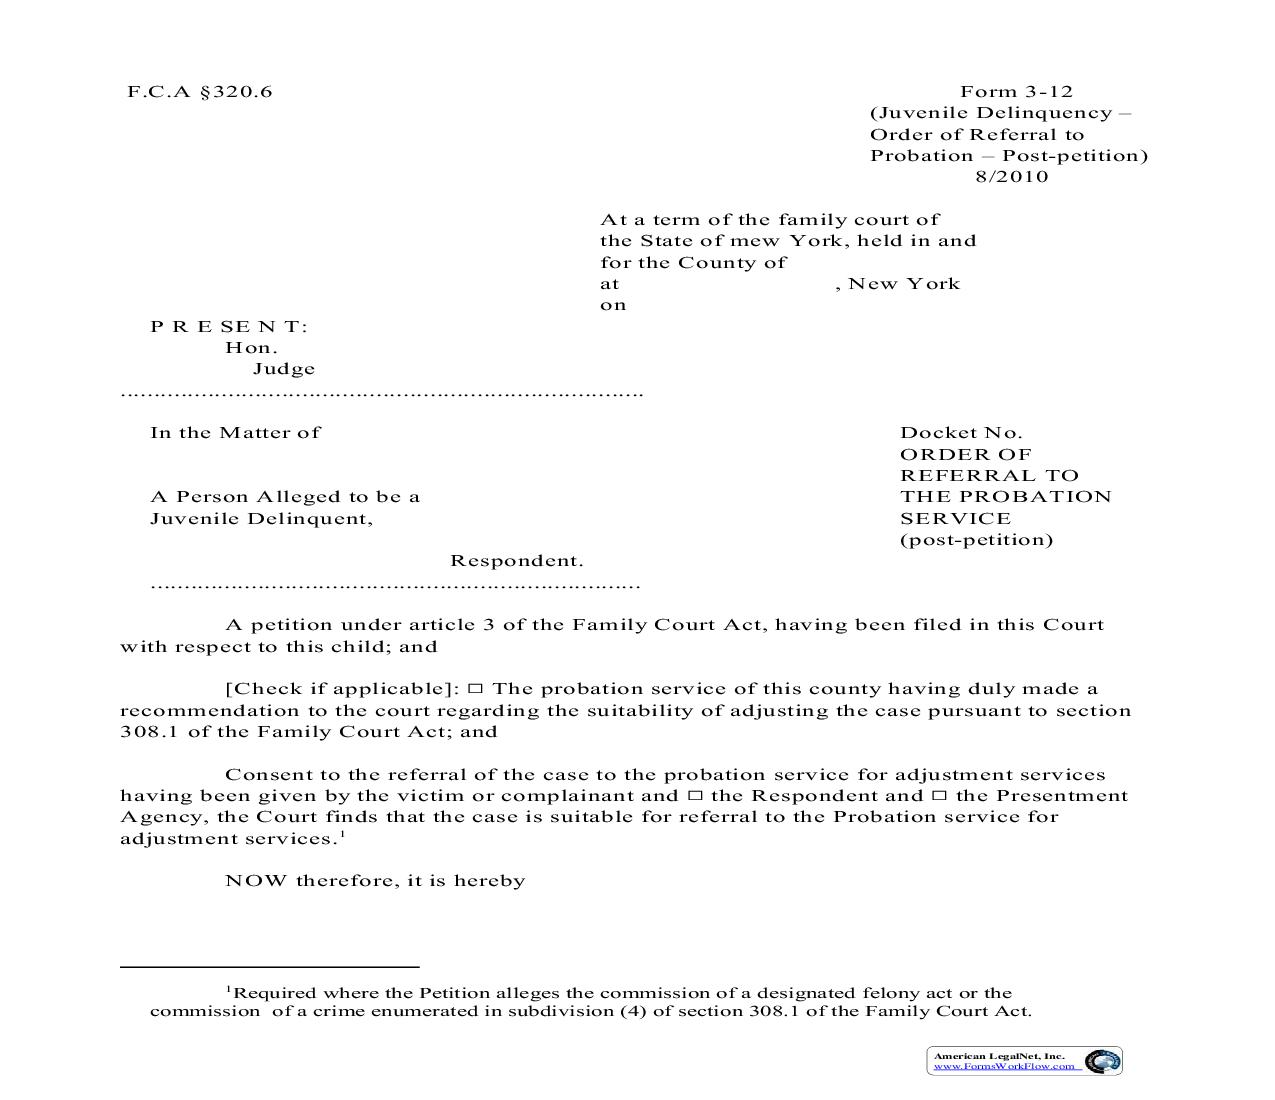 Order Of Referral To The Probation Service Post Petition {3-12} | Pdf Fpdf Doc Docx | New York